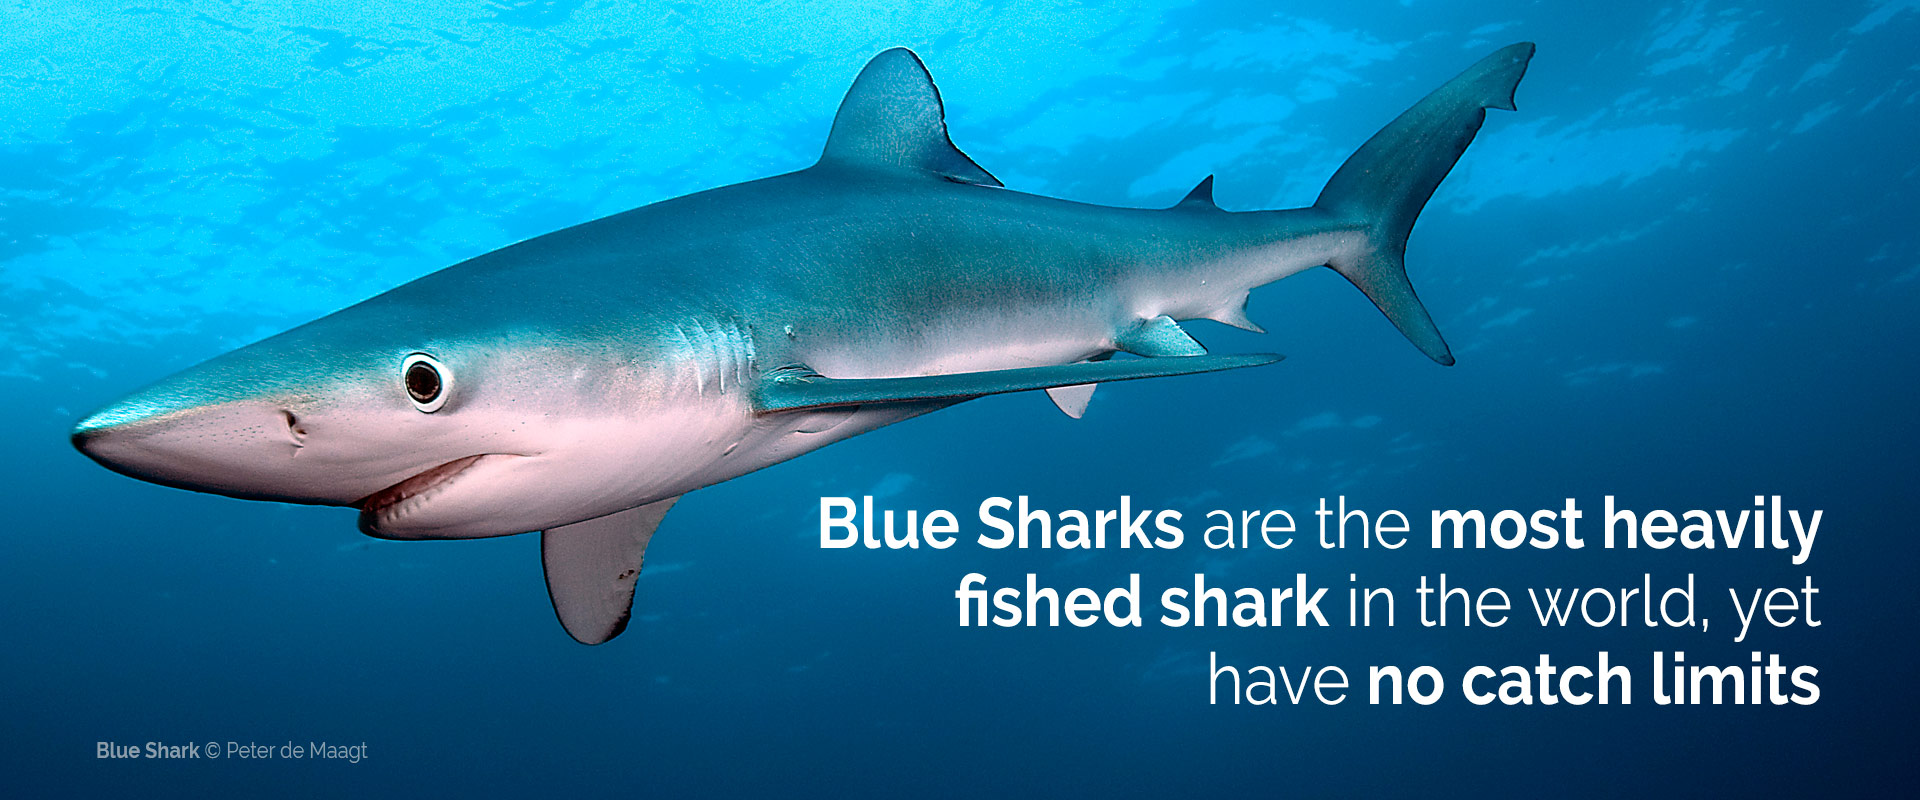 no limits no future let s stop uncontrolled shark fishing now